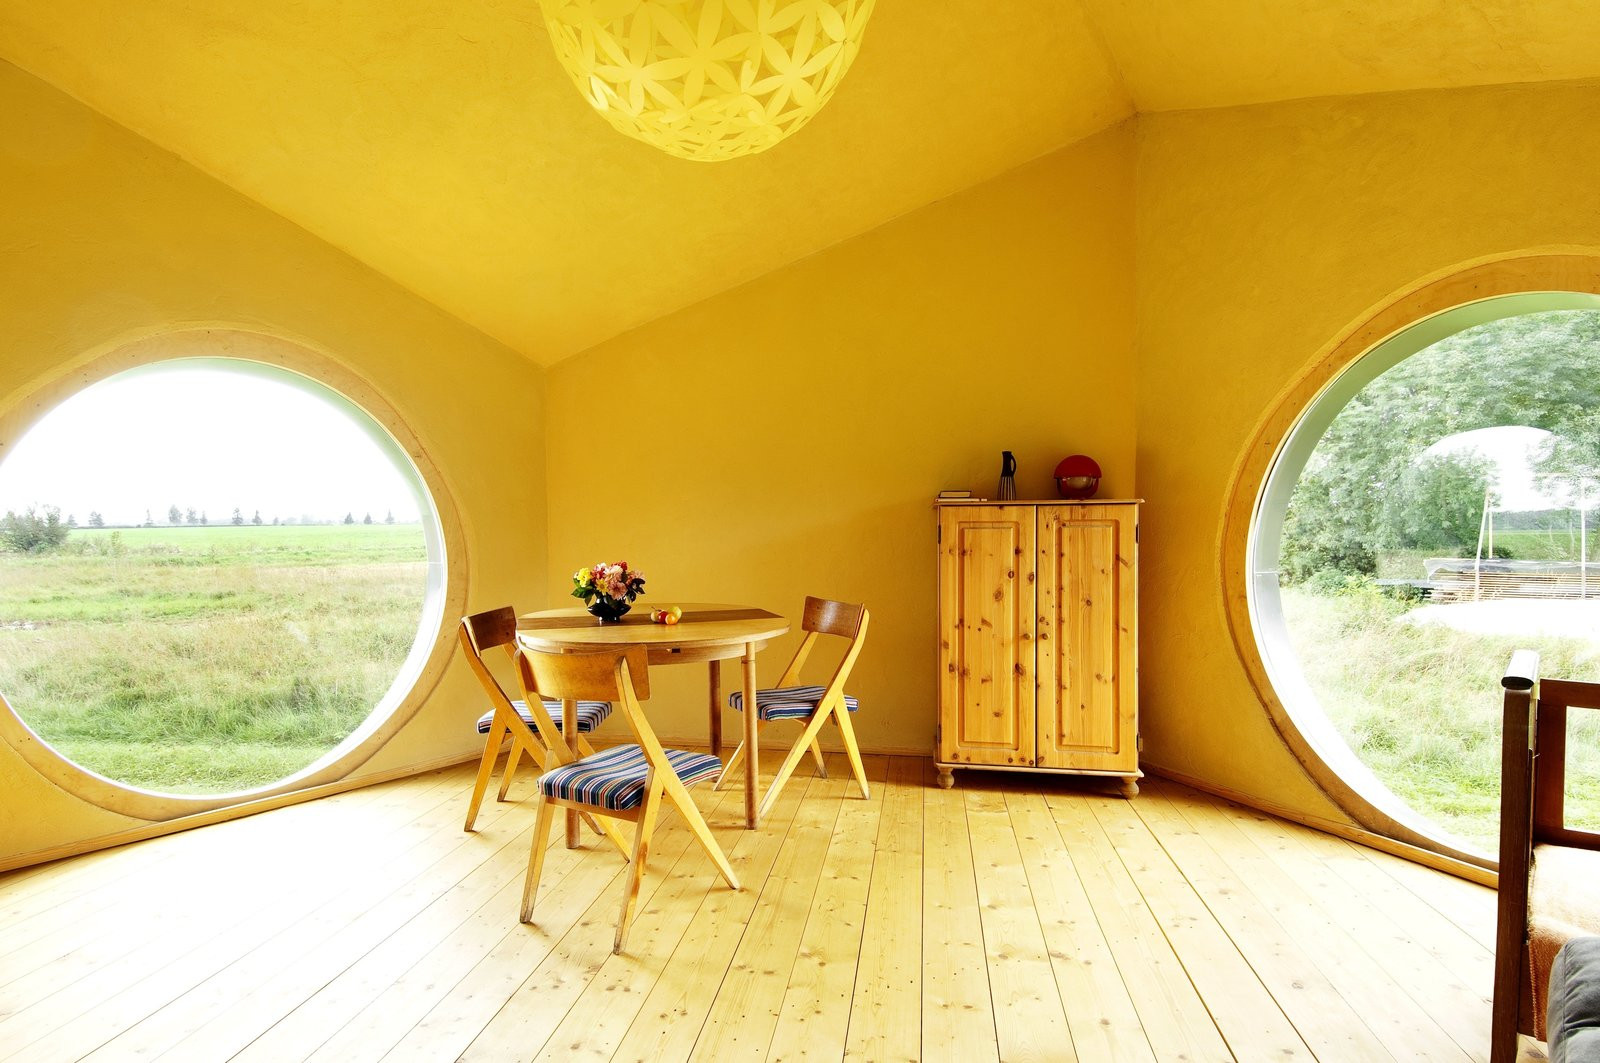 The interior of Jaanus Orgusaar's NOA cabin in the Virumaa region of Estonia. The wide windows provide a great view of the surroundings.  Photo 6 of 10 in Estonian Designer's Tiny Geometric Cabin